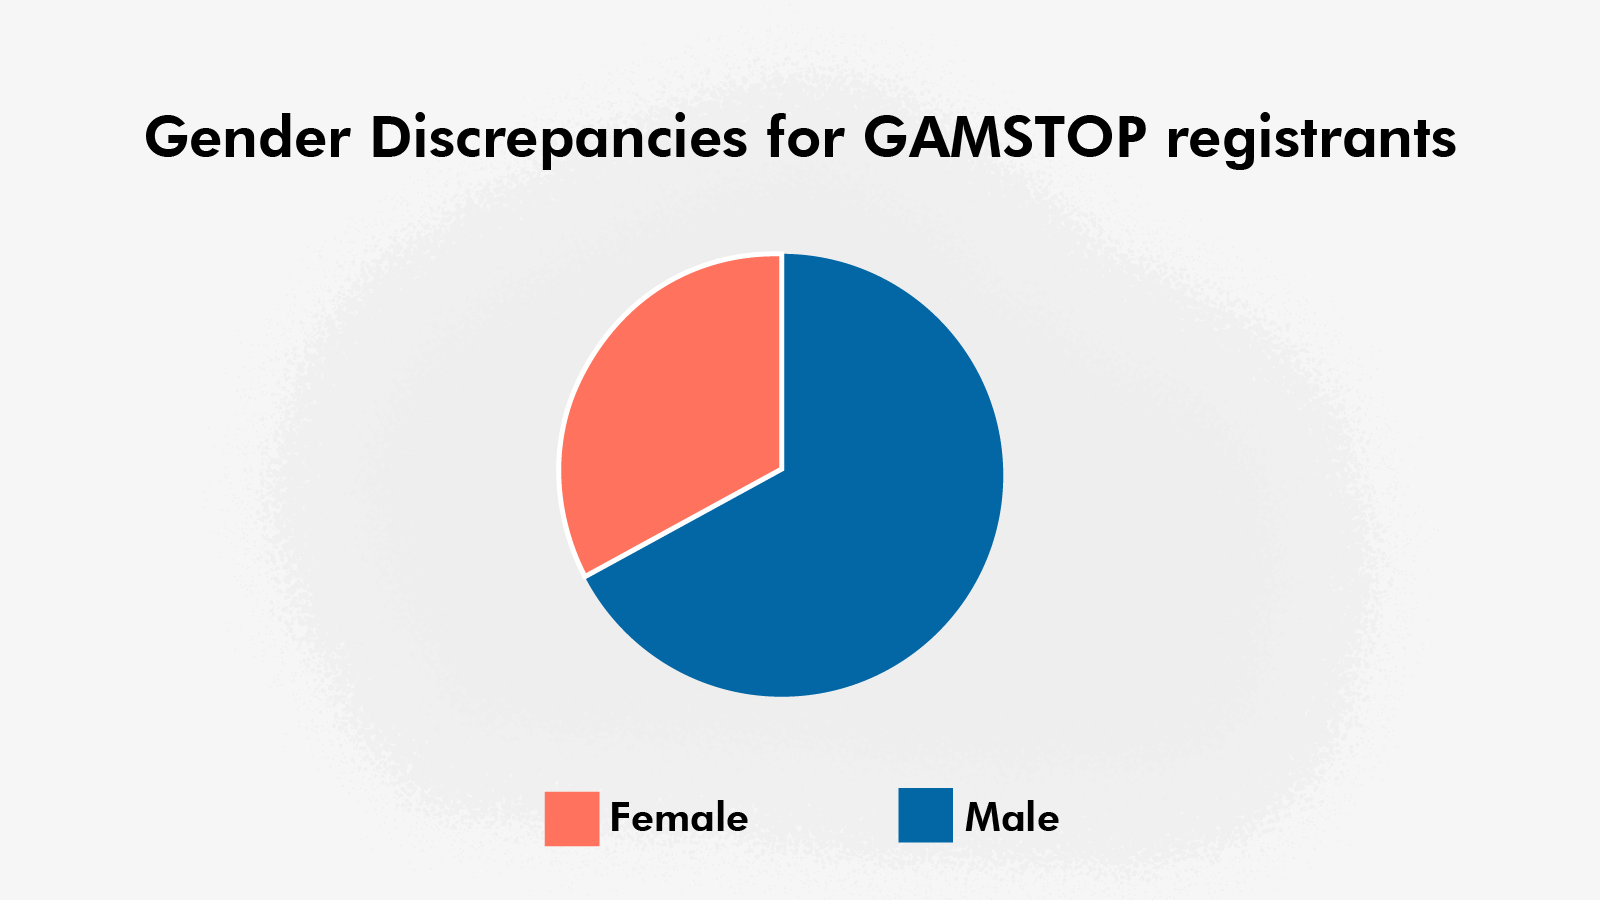 GAMSTOP gambling exclusion related customers differ based on gender